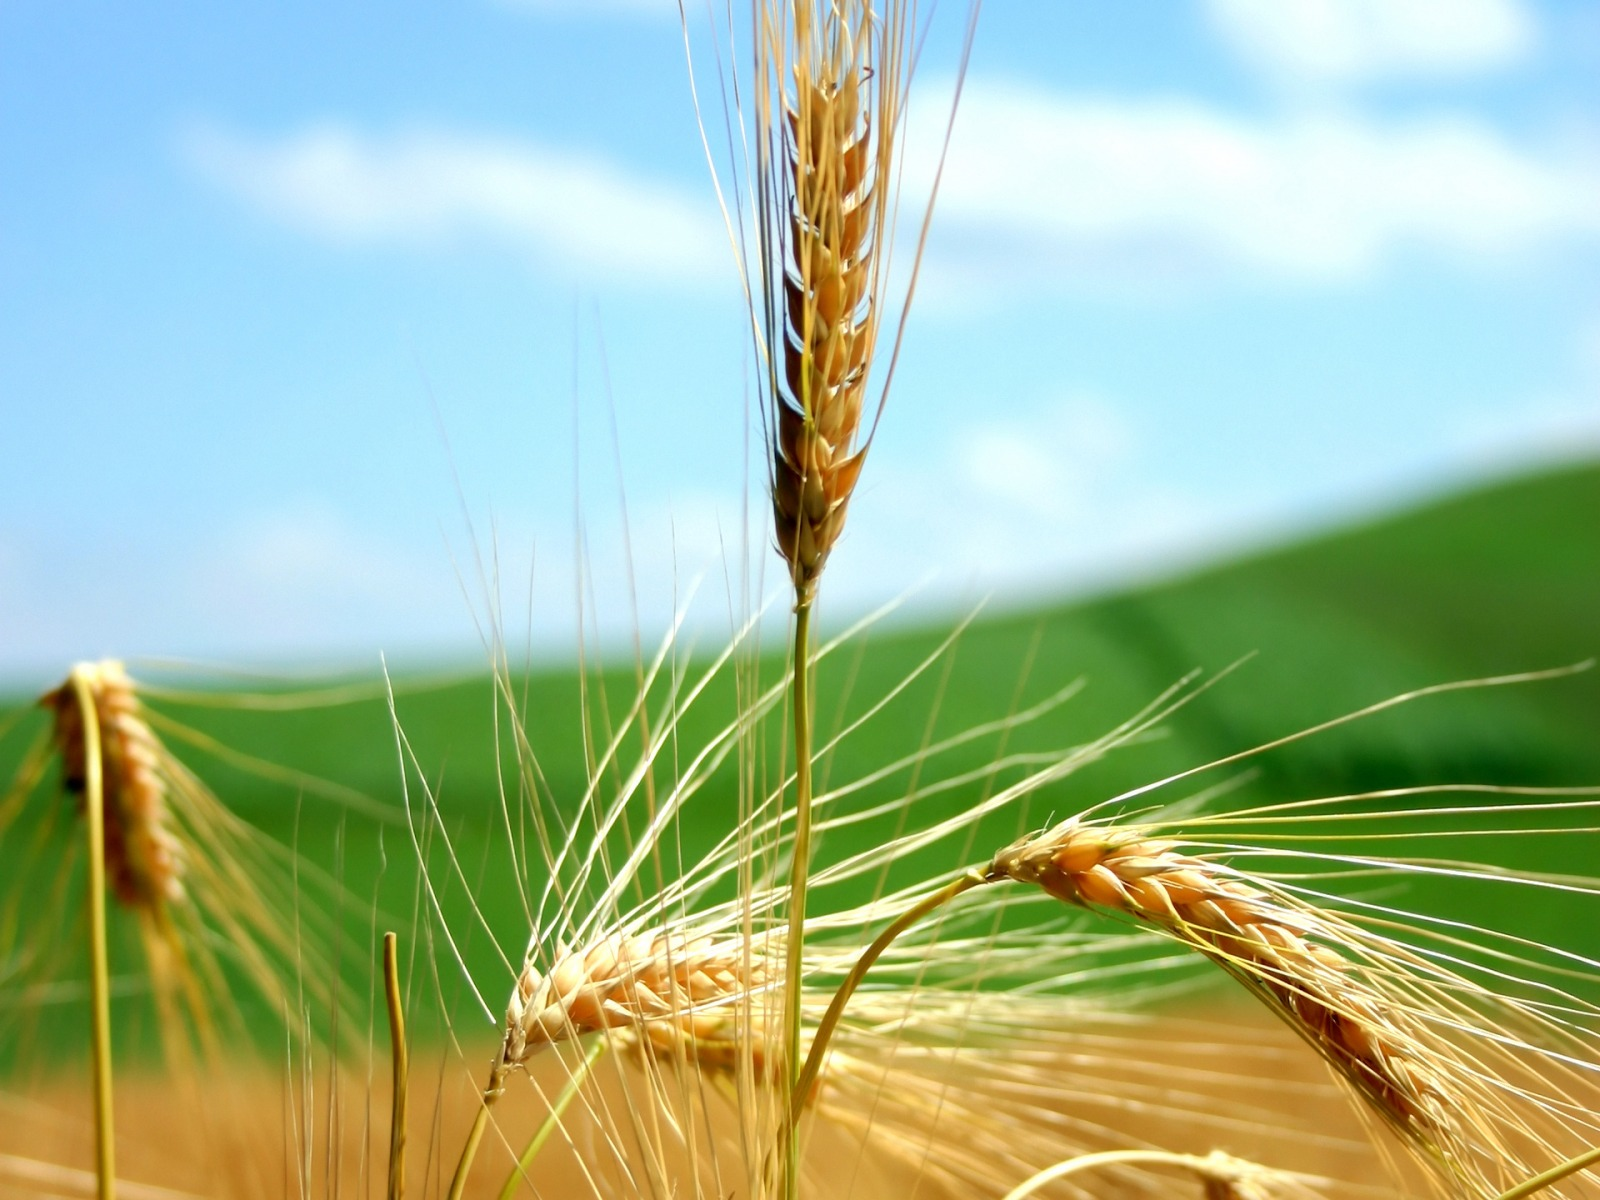 wheat wallpaper plants nature wallpapers in jpg format for free download